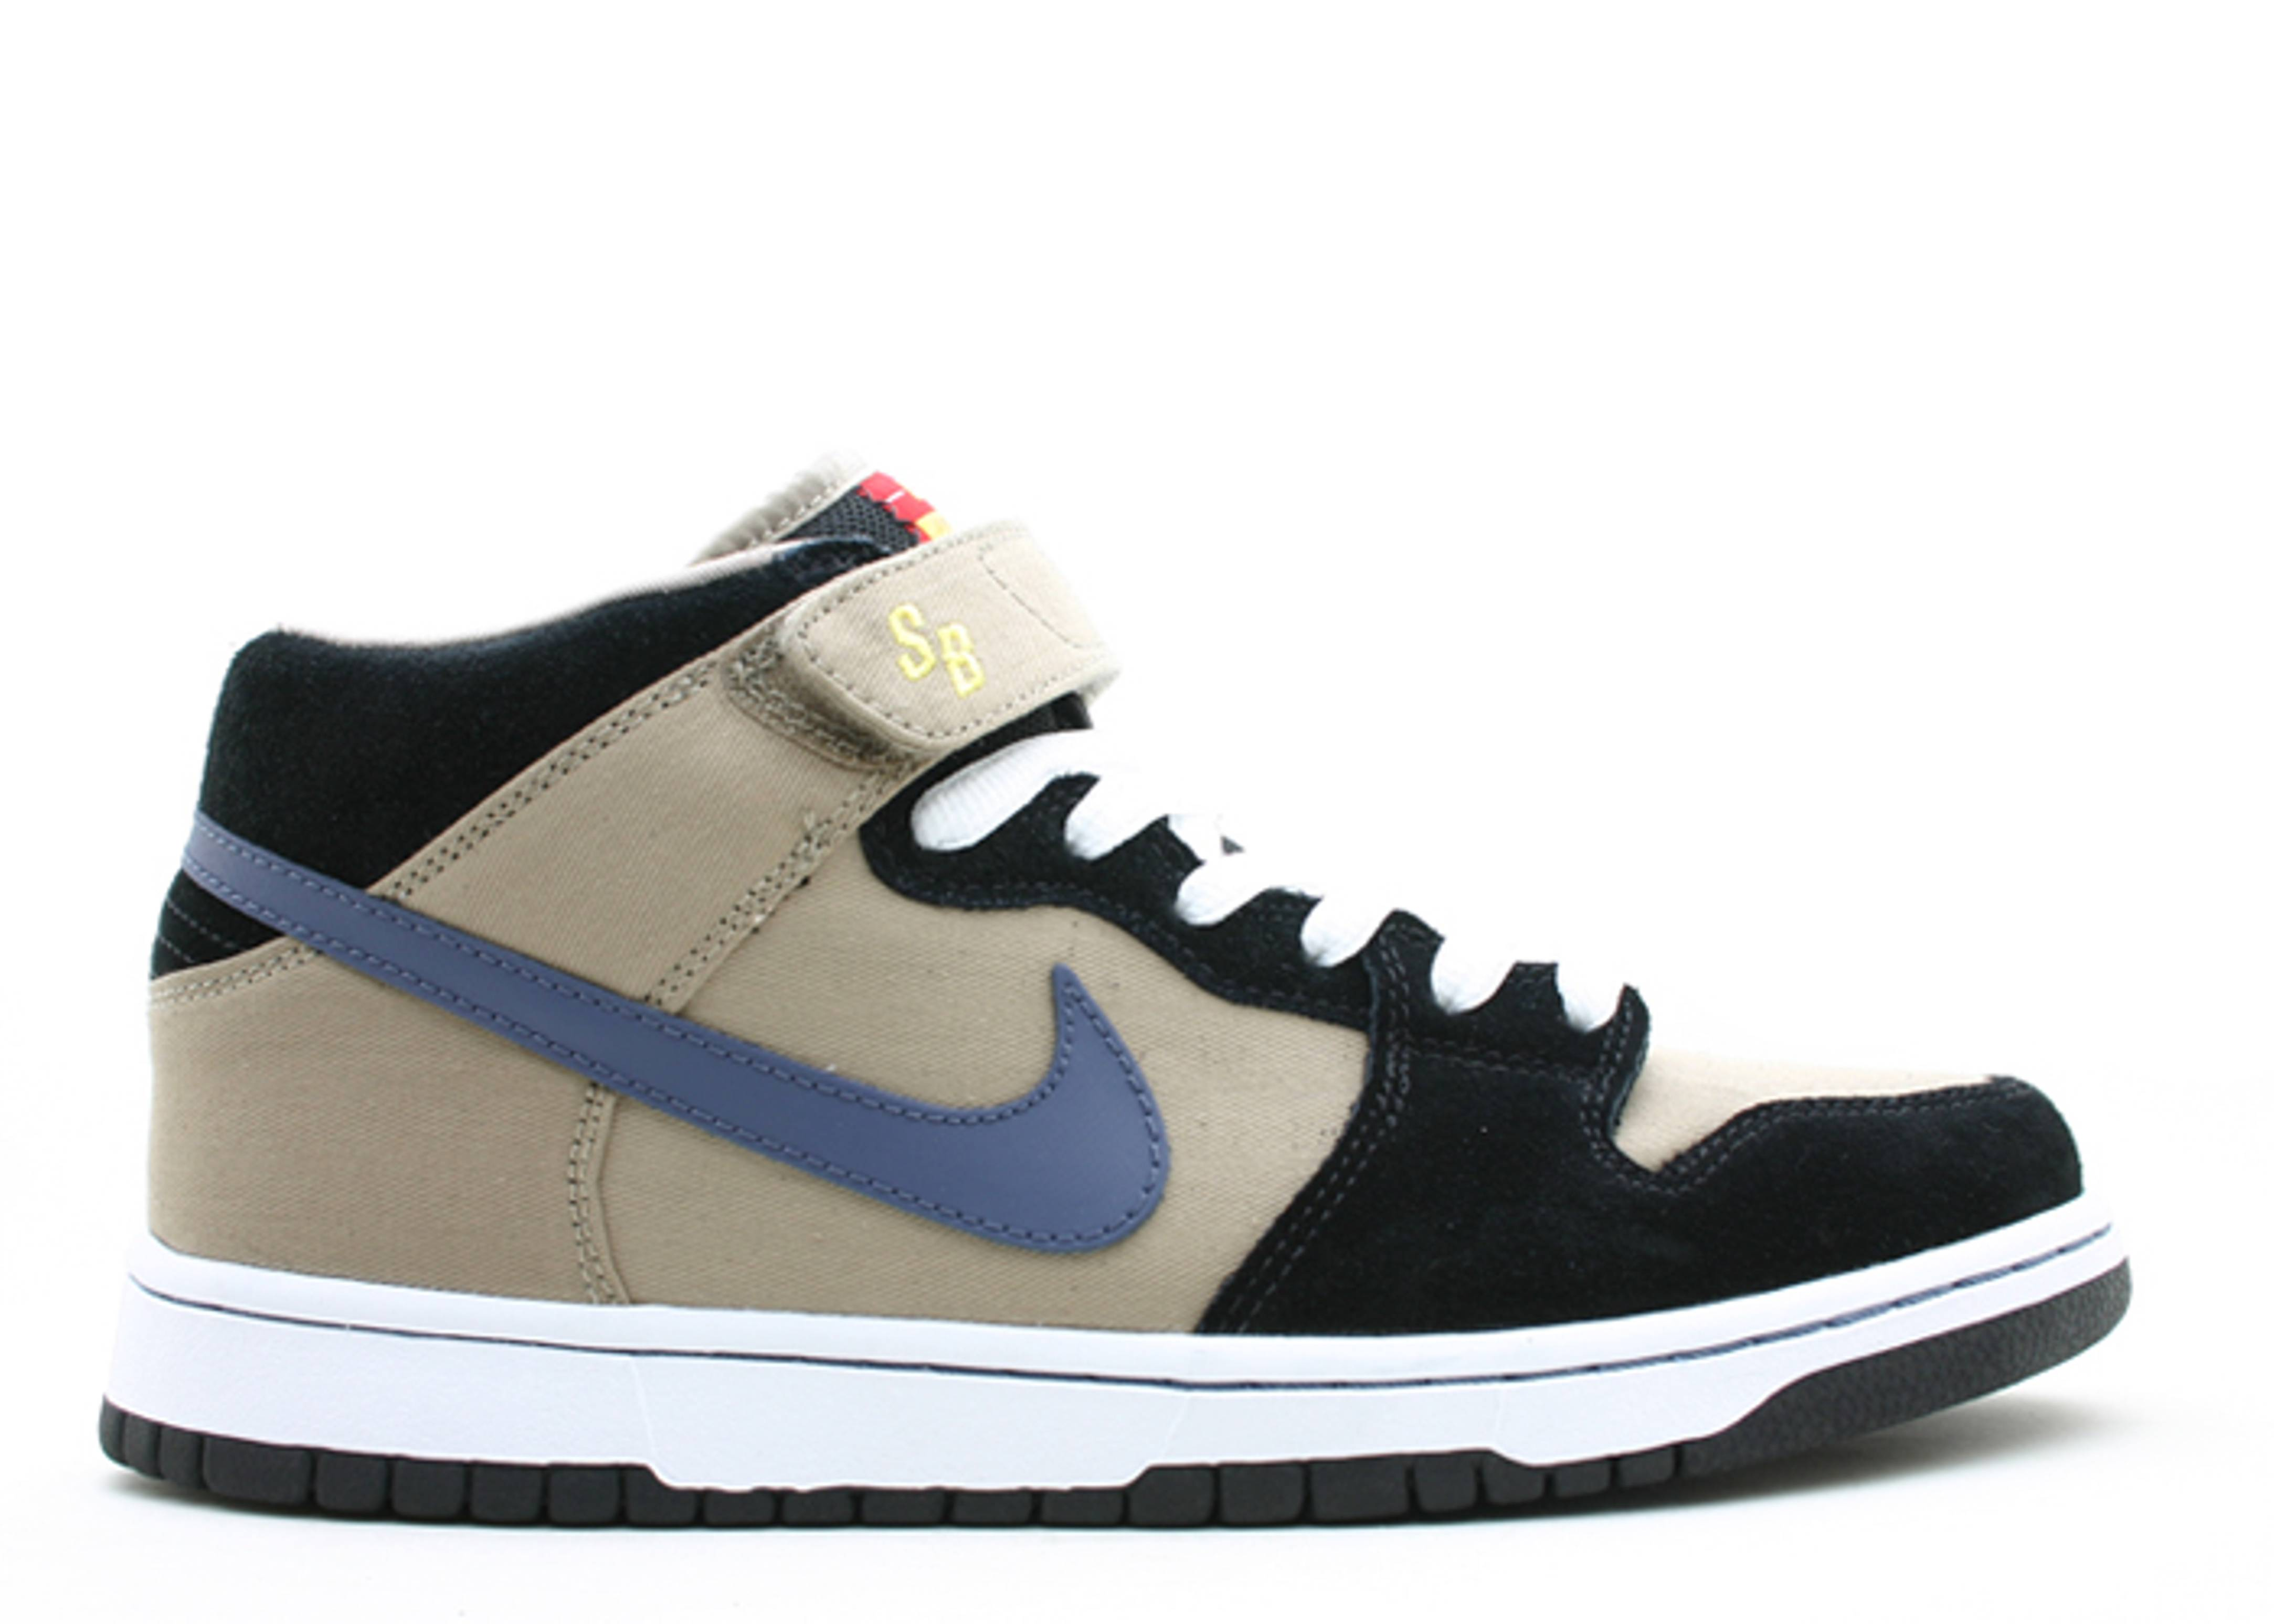 official photos 02b31 fb3d5 nike sb dunk mids